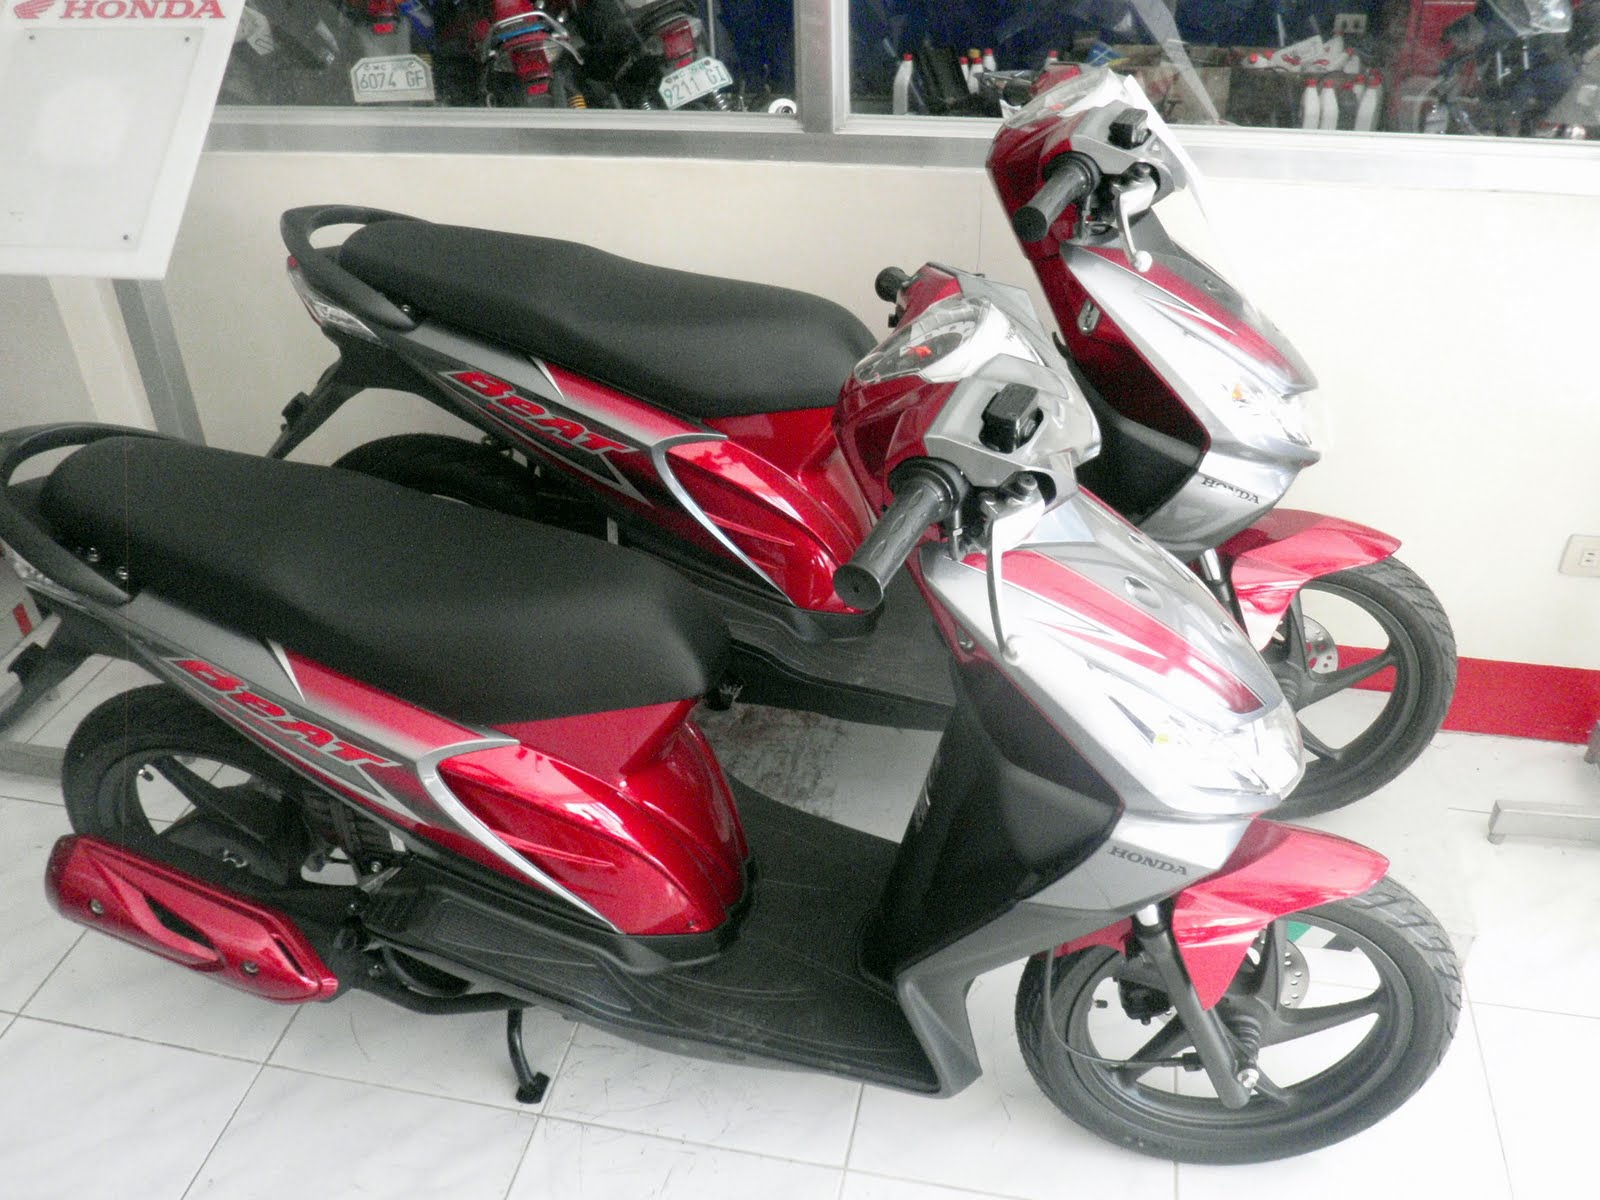 The Honda Beat pictured above